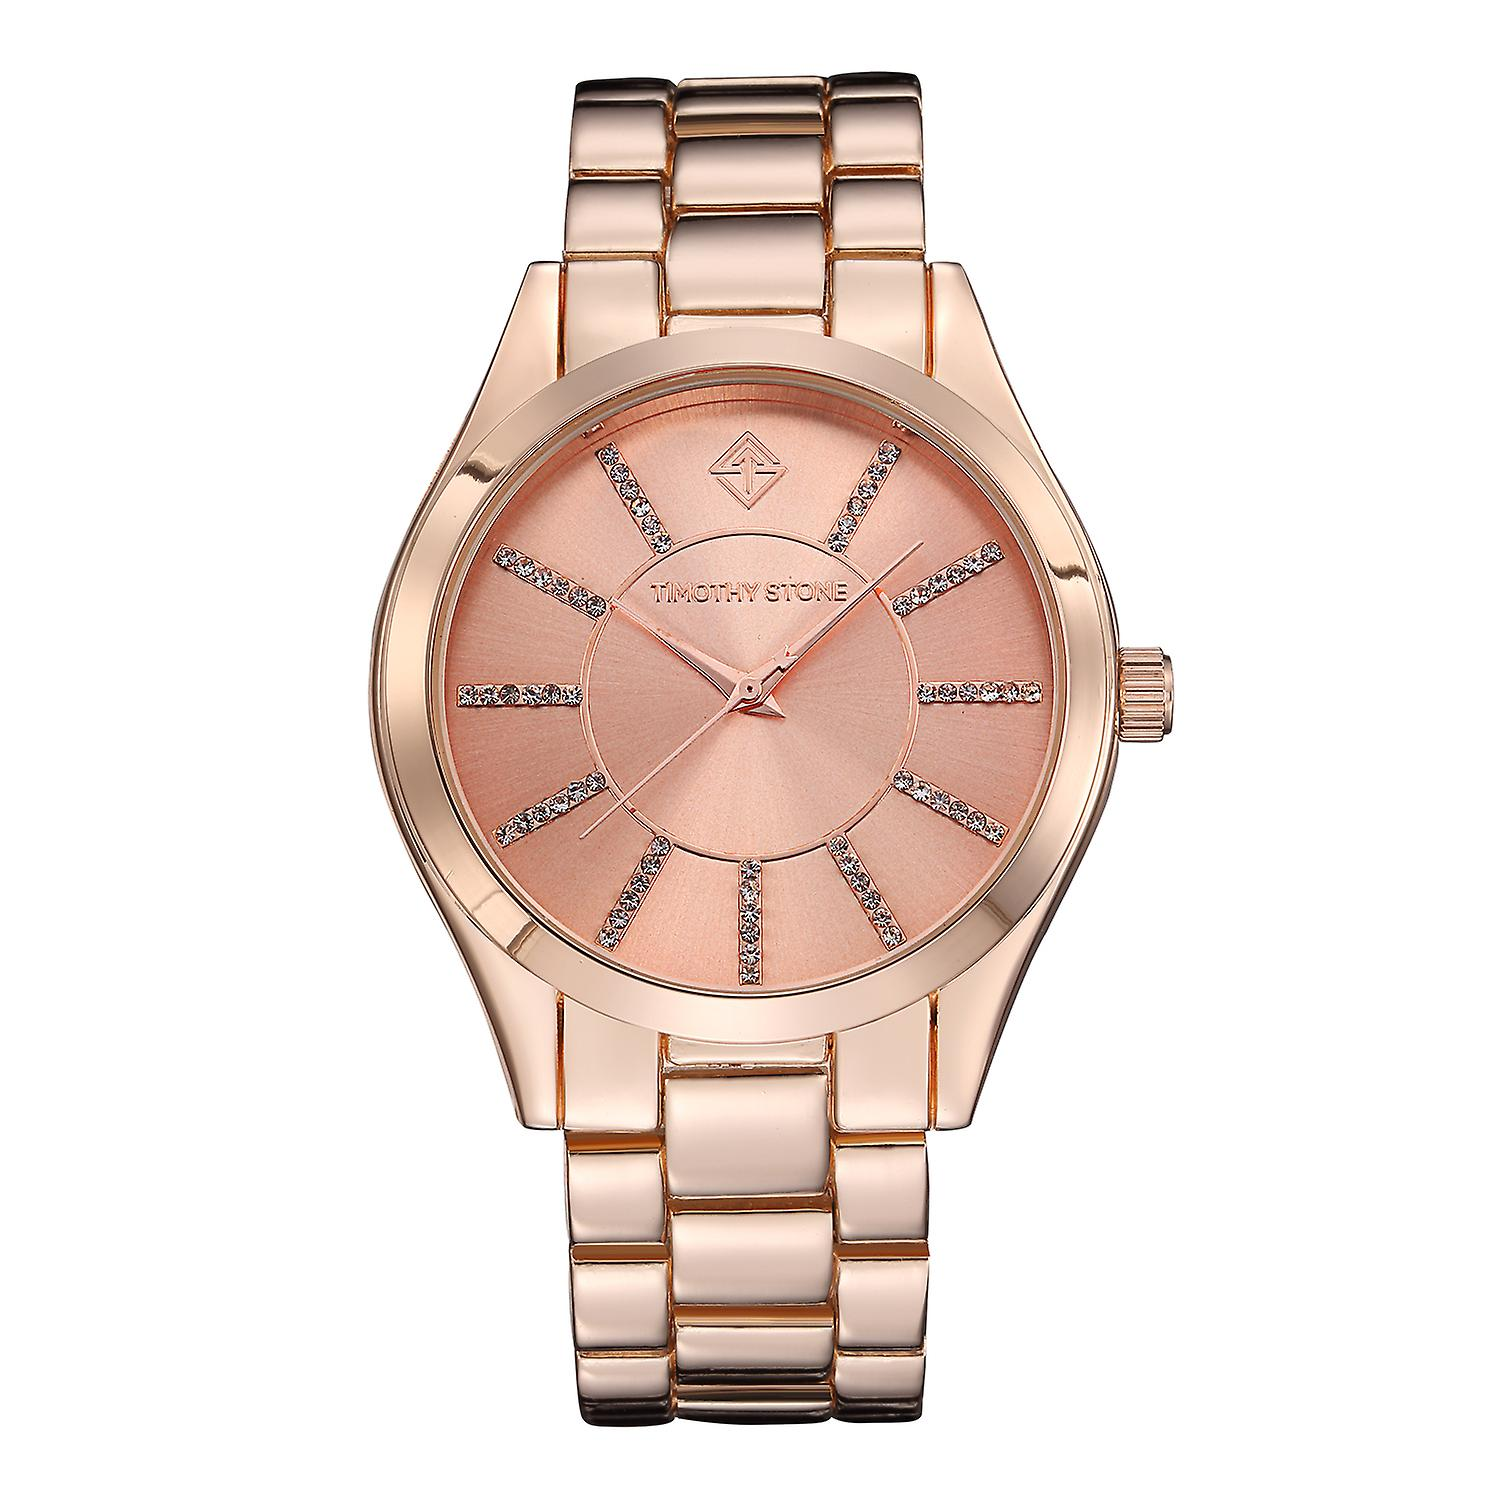 Timothy Stone Women's CHARME-STAINLESS Rose Gold-Tone Watch